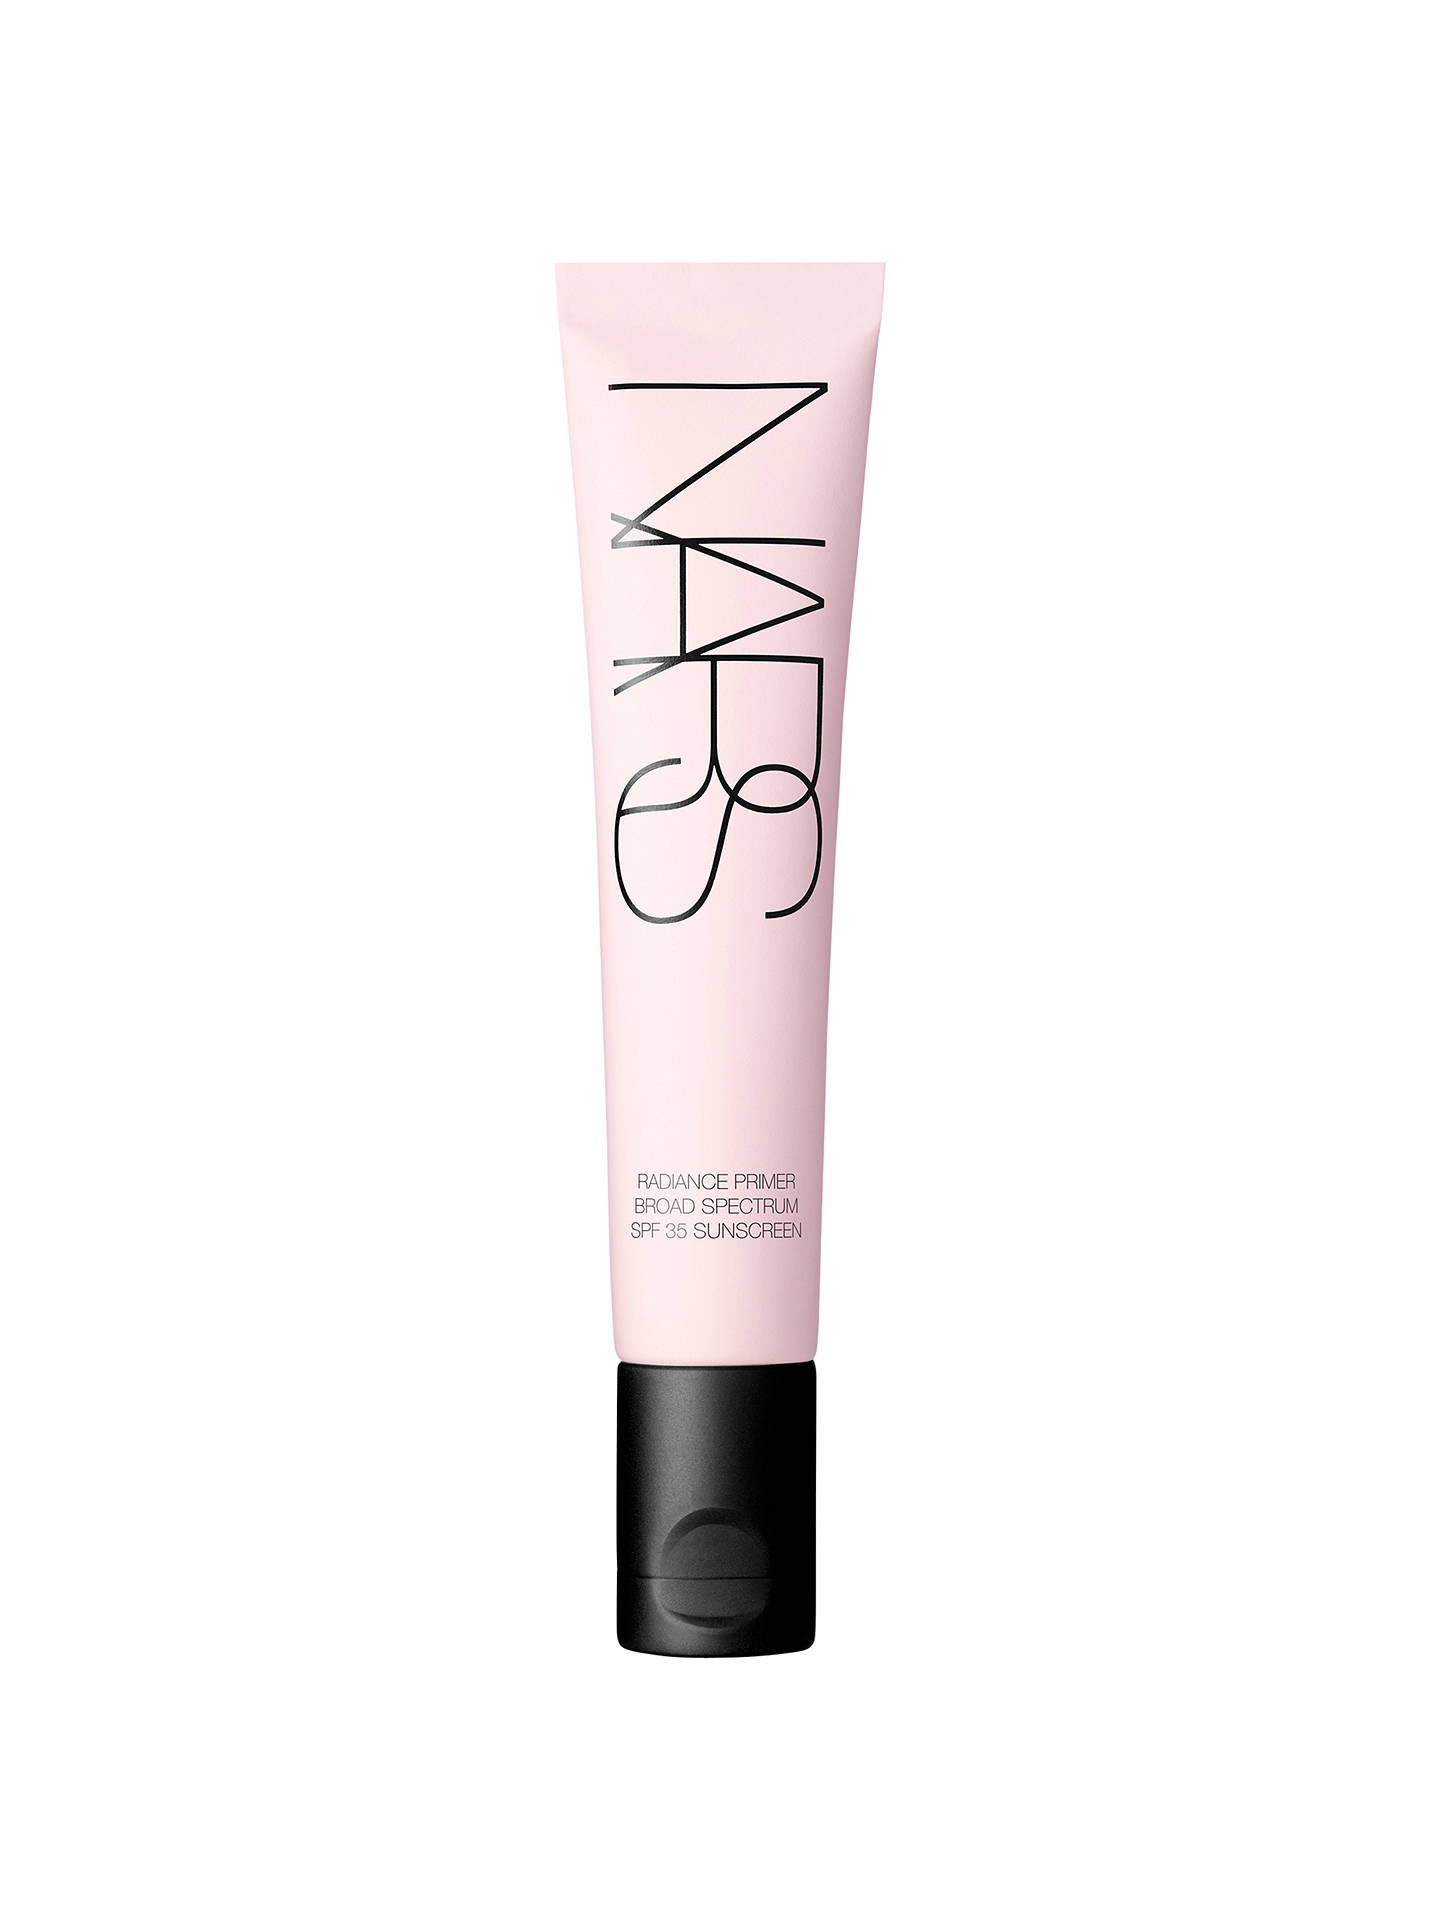 Nars Radiance Primer Spf 35, 30ml by Nars